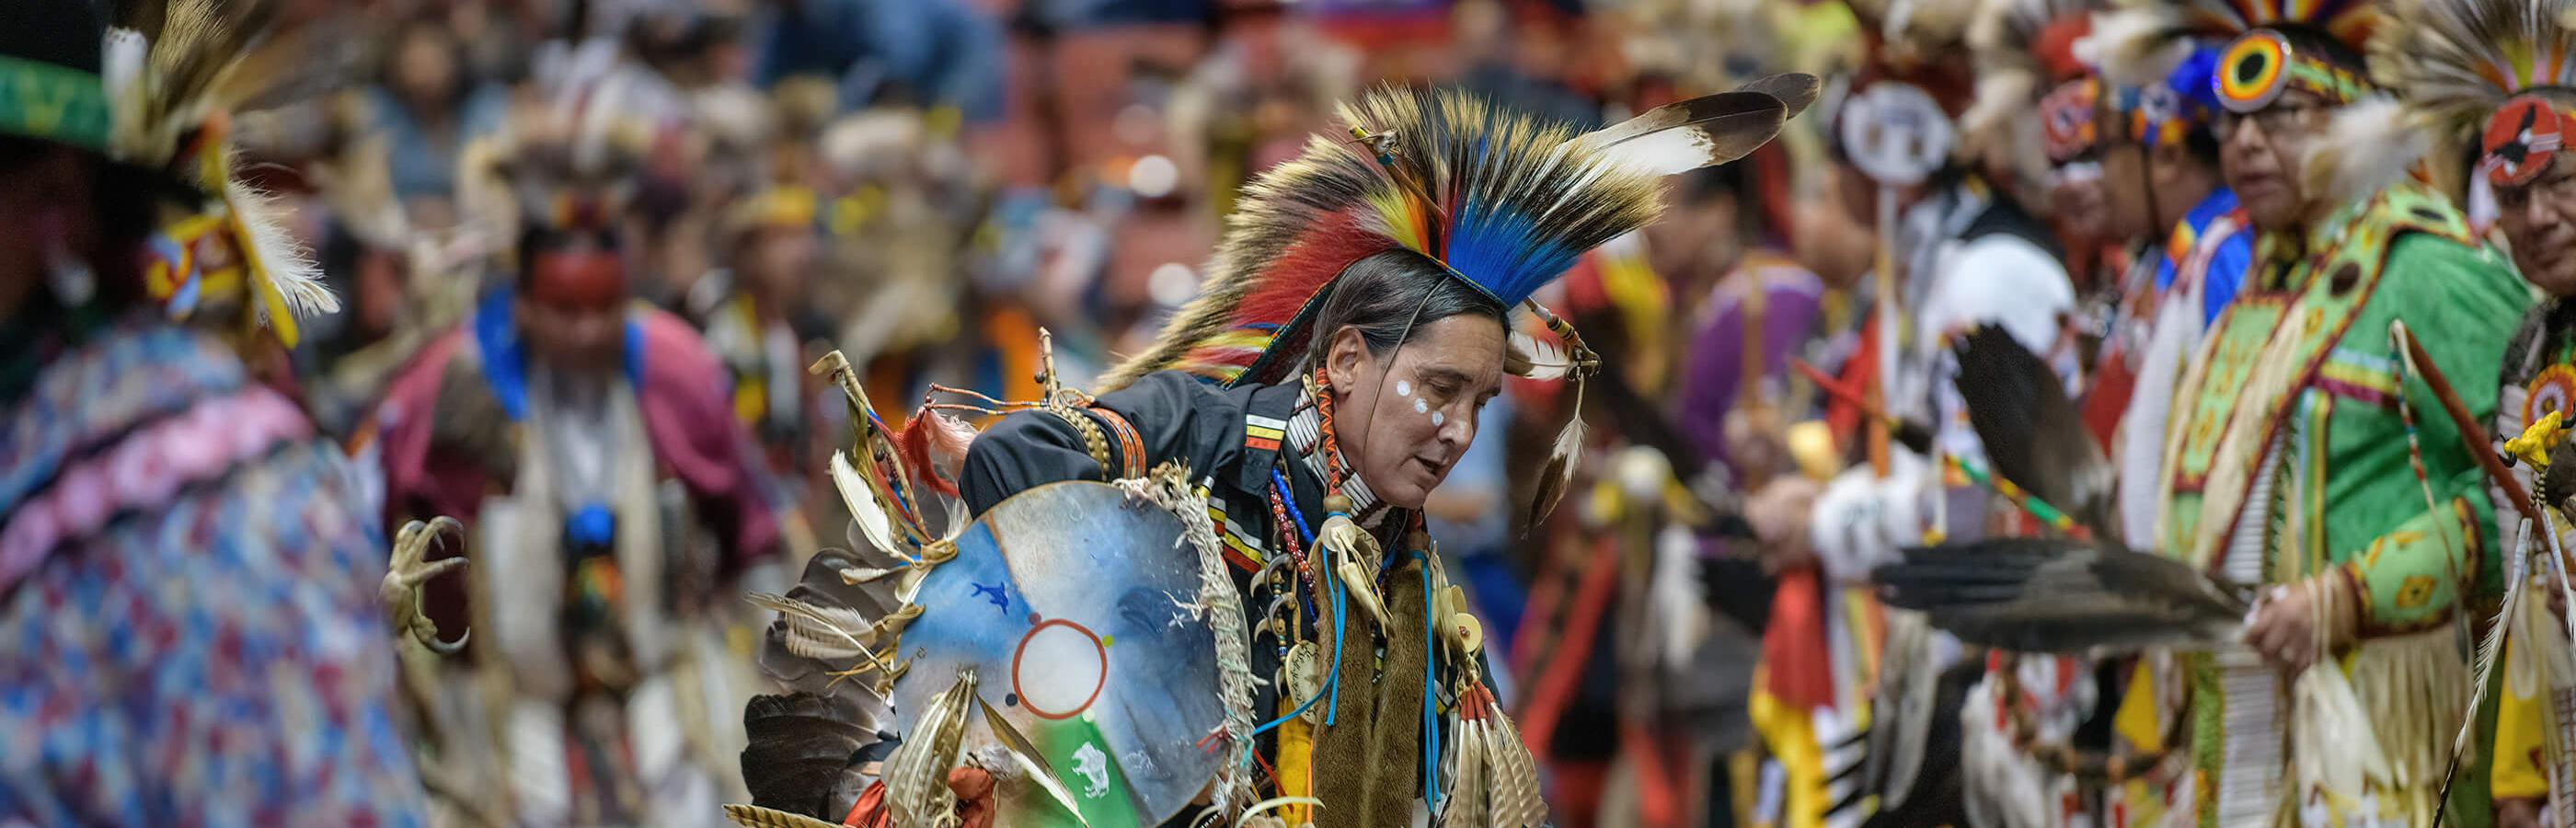 Dancer at the Black Hills Powwow in Rapid City